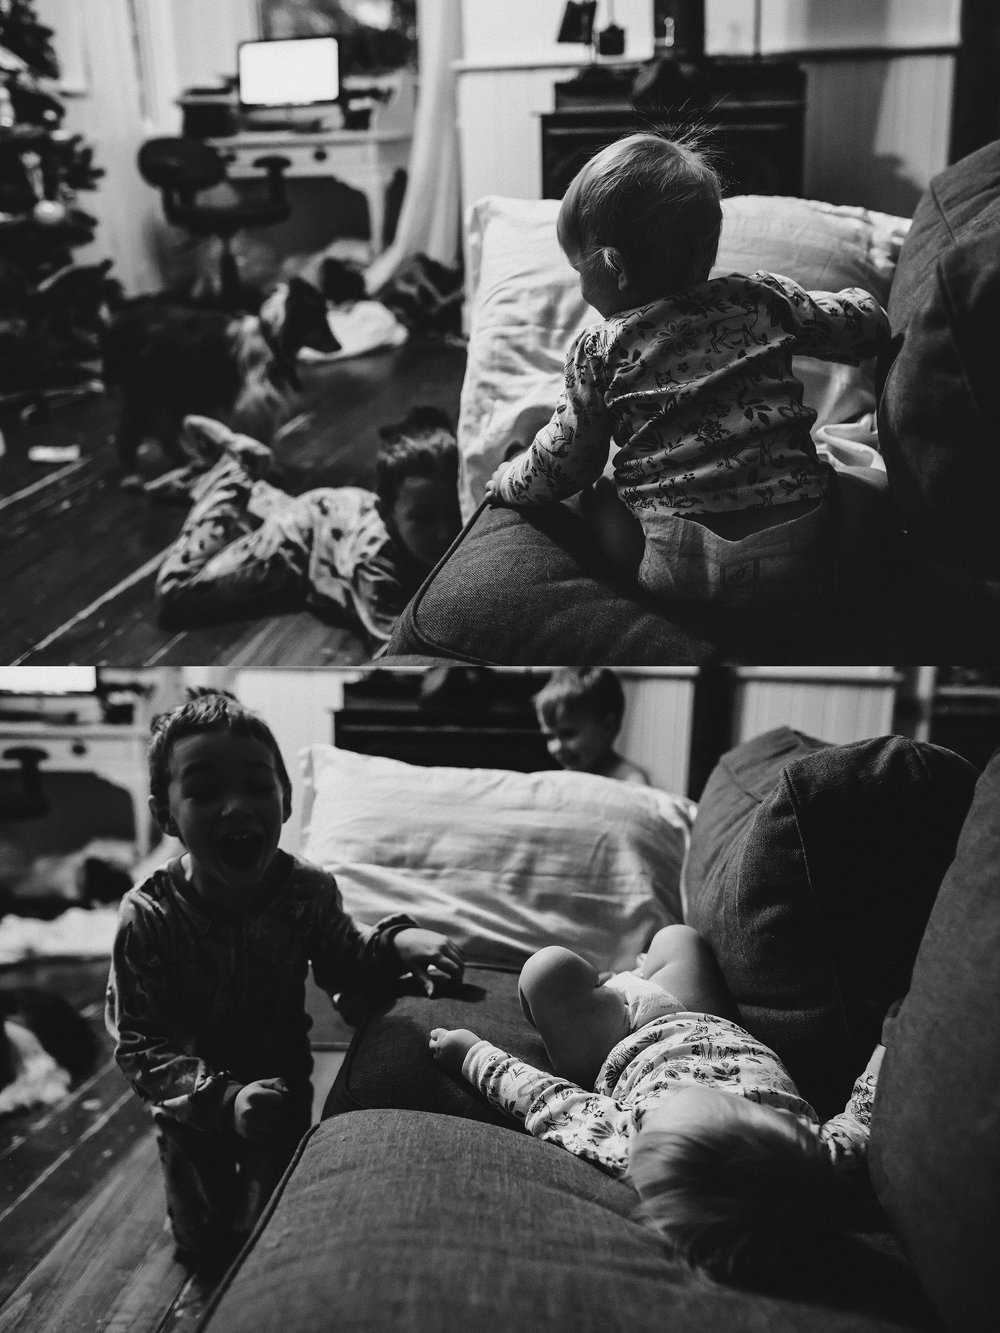 2. 365 - My littlest loves it when her big brother scares her. He sneaks around the couch, then pops up and screams his head off. She laughs hysterically. I felt this moment was best told with two photos.